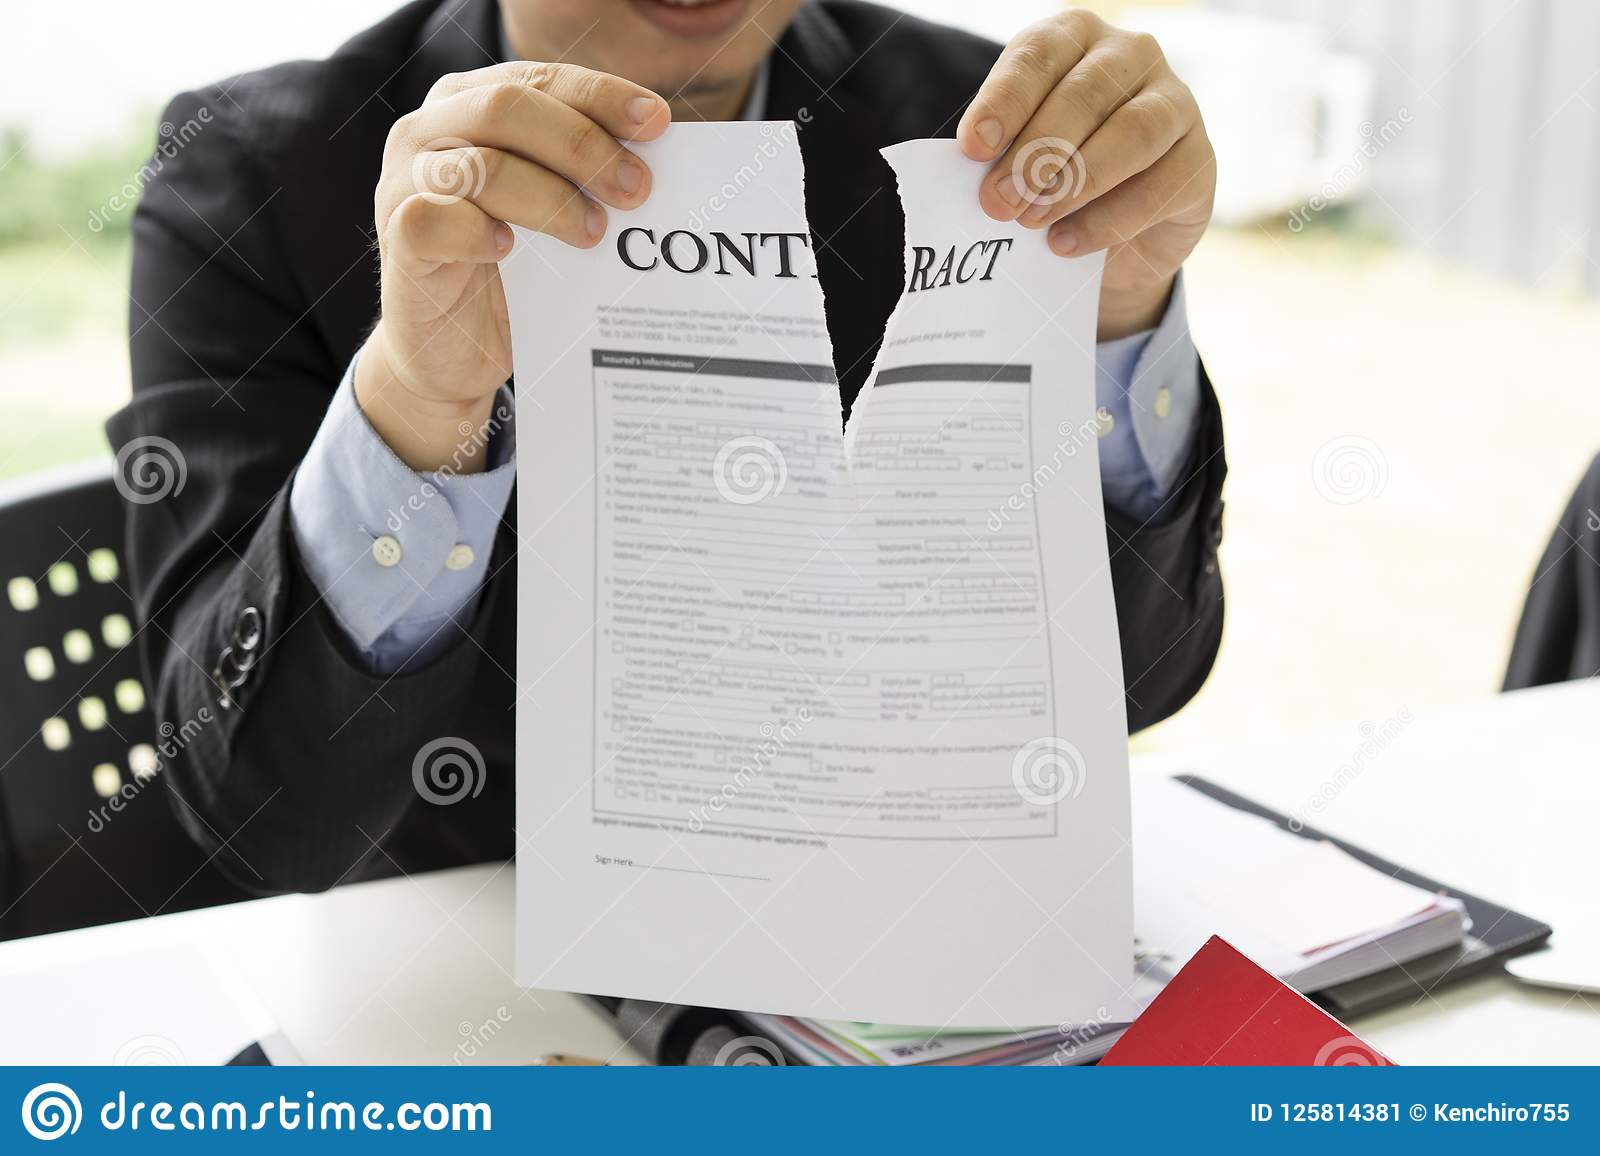 Hands of businessman ripping contract agreement paper,contract canceled,